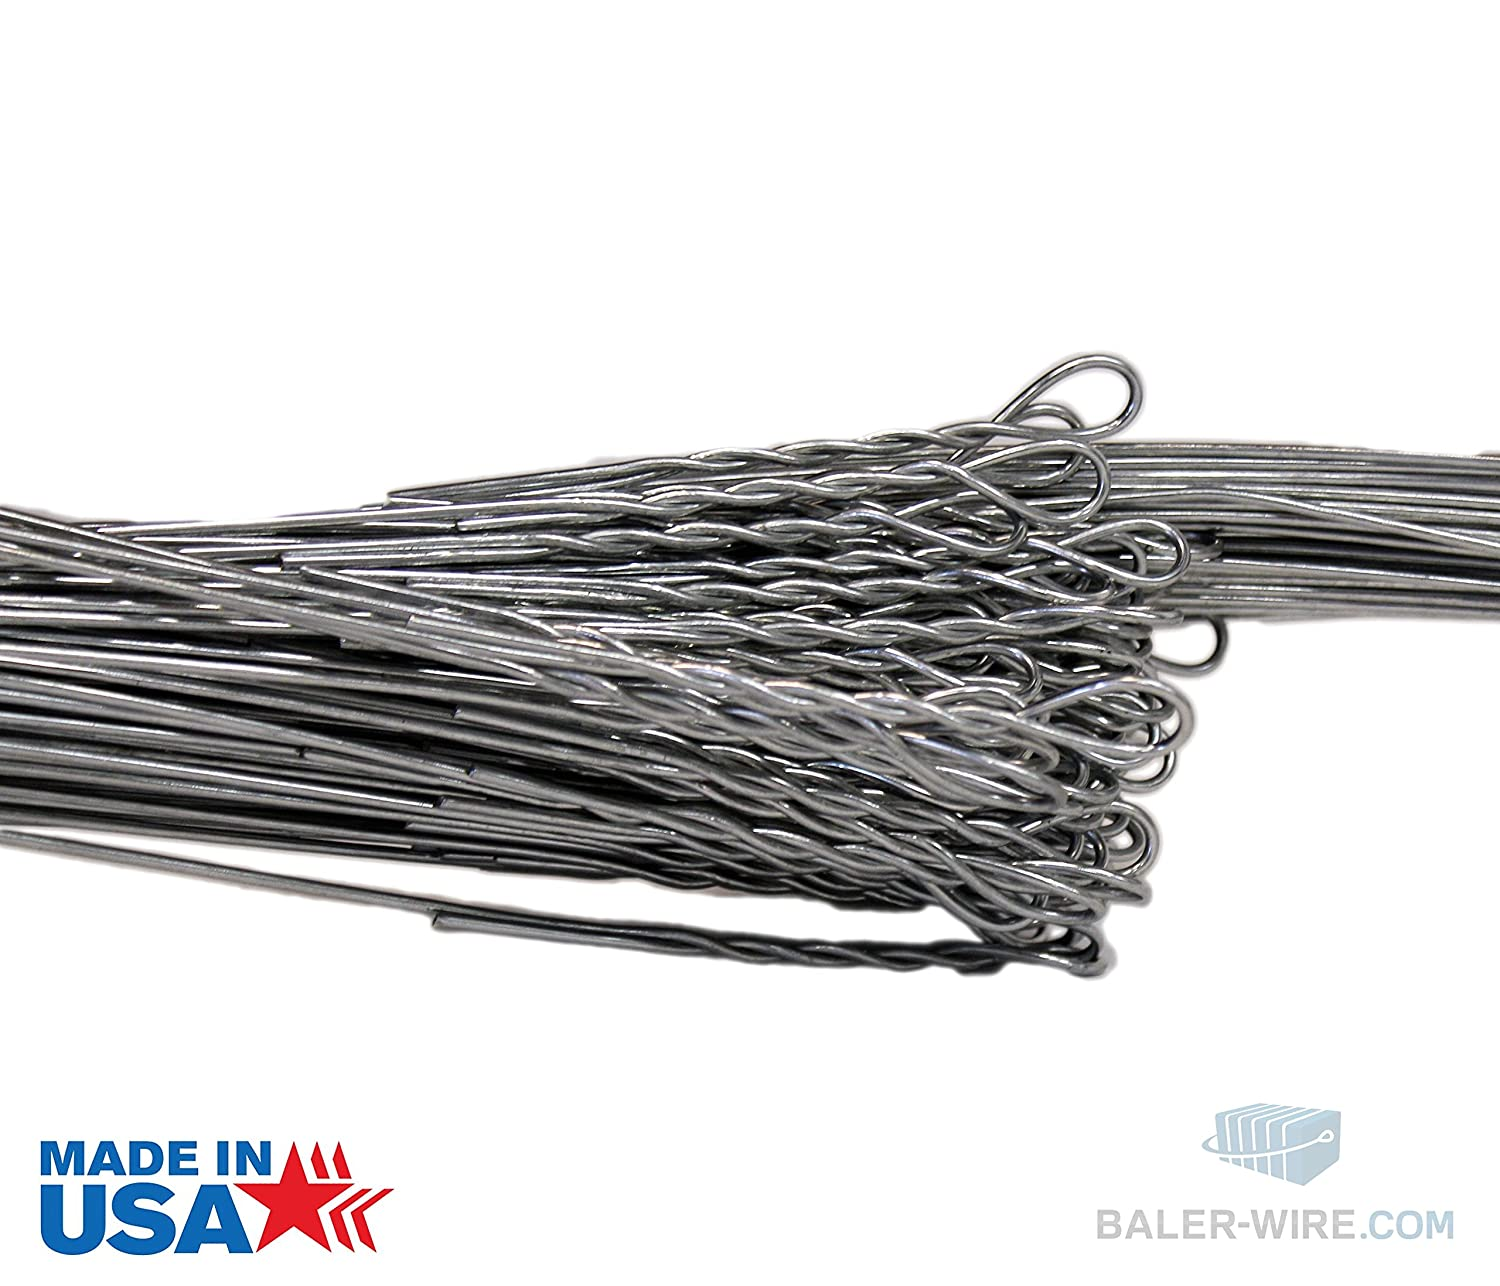 14 Gauge x 14\' Length Baler Wire (Bale Wire) 125 count: Amazon.com ...